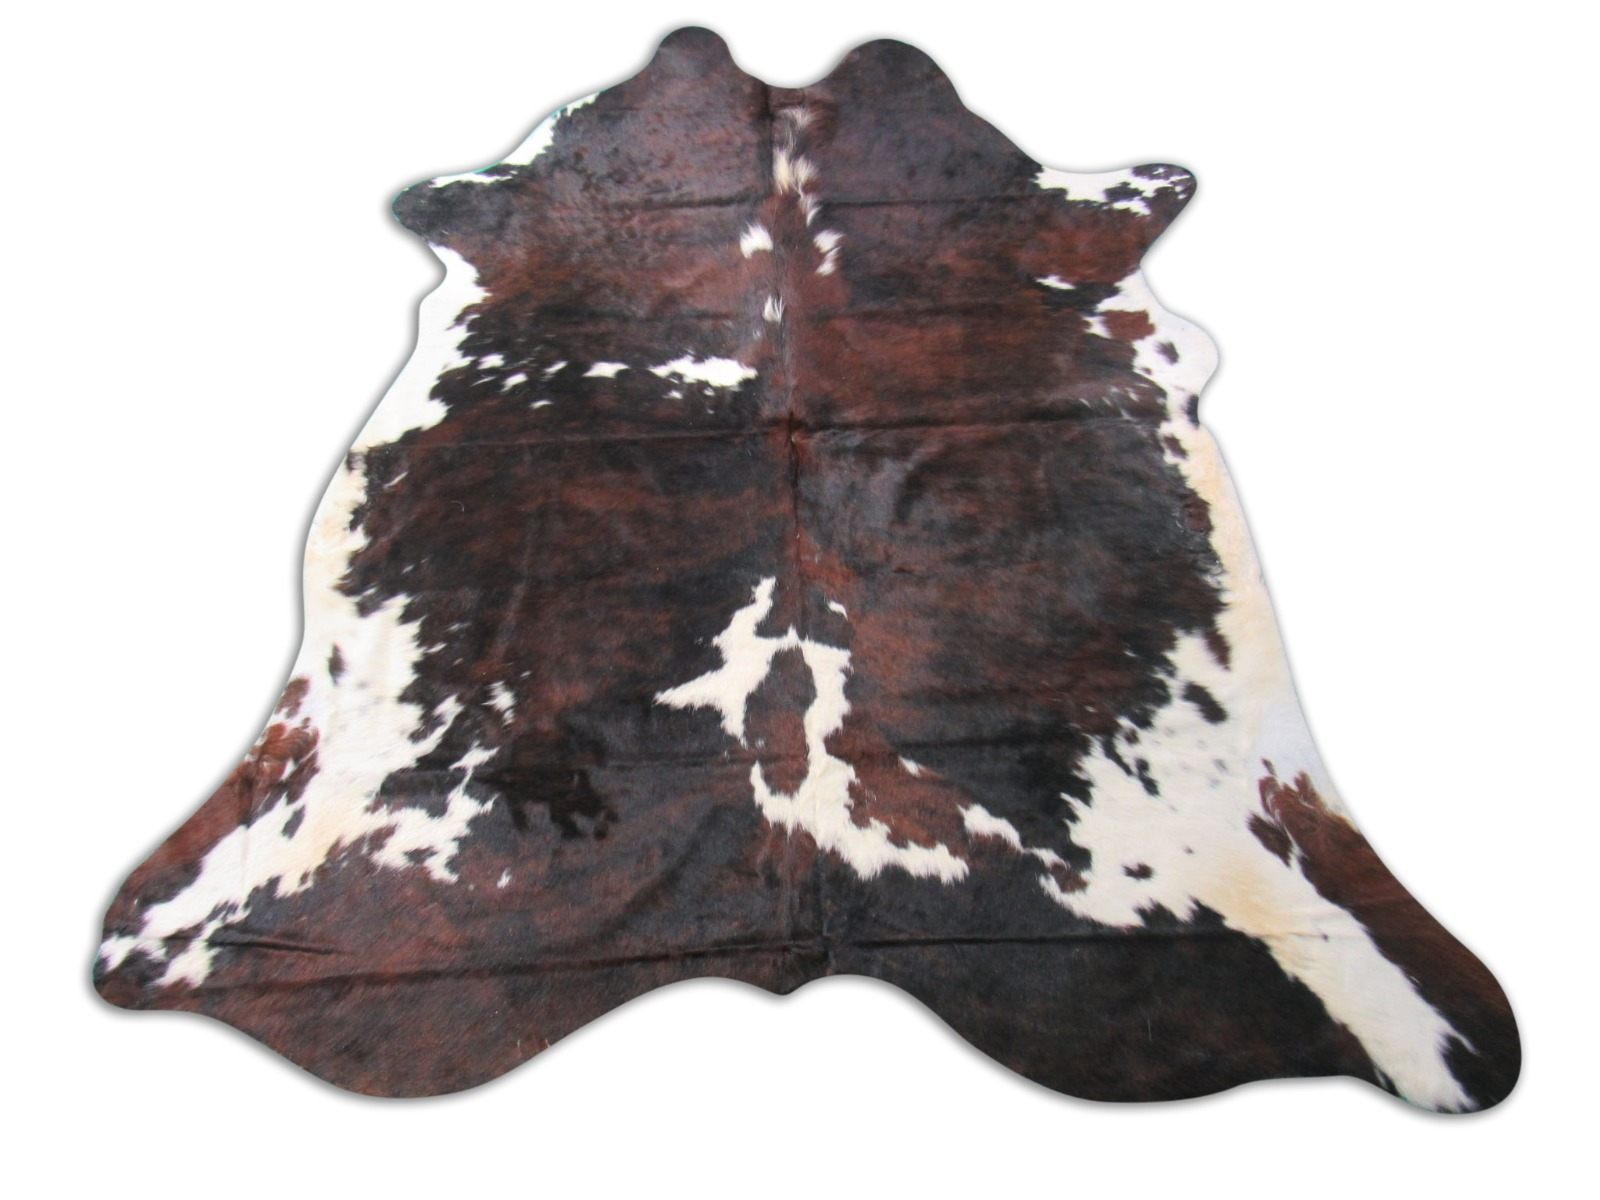 A-1306 Tricolor Speckled Cowhide Rug Size: 7 1/4' X 7'